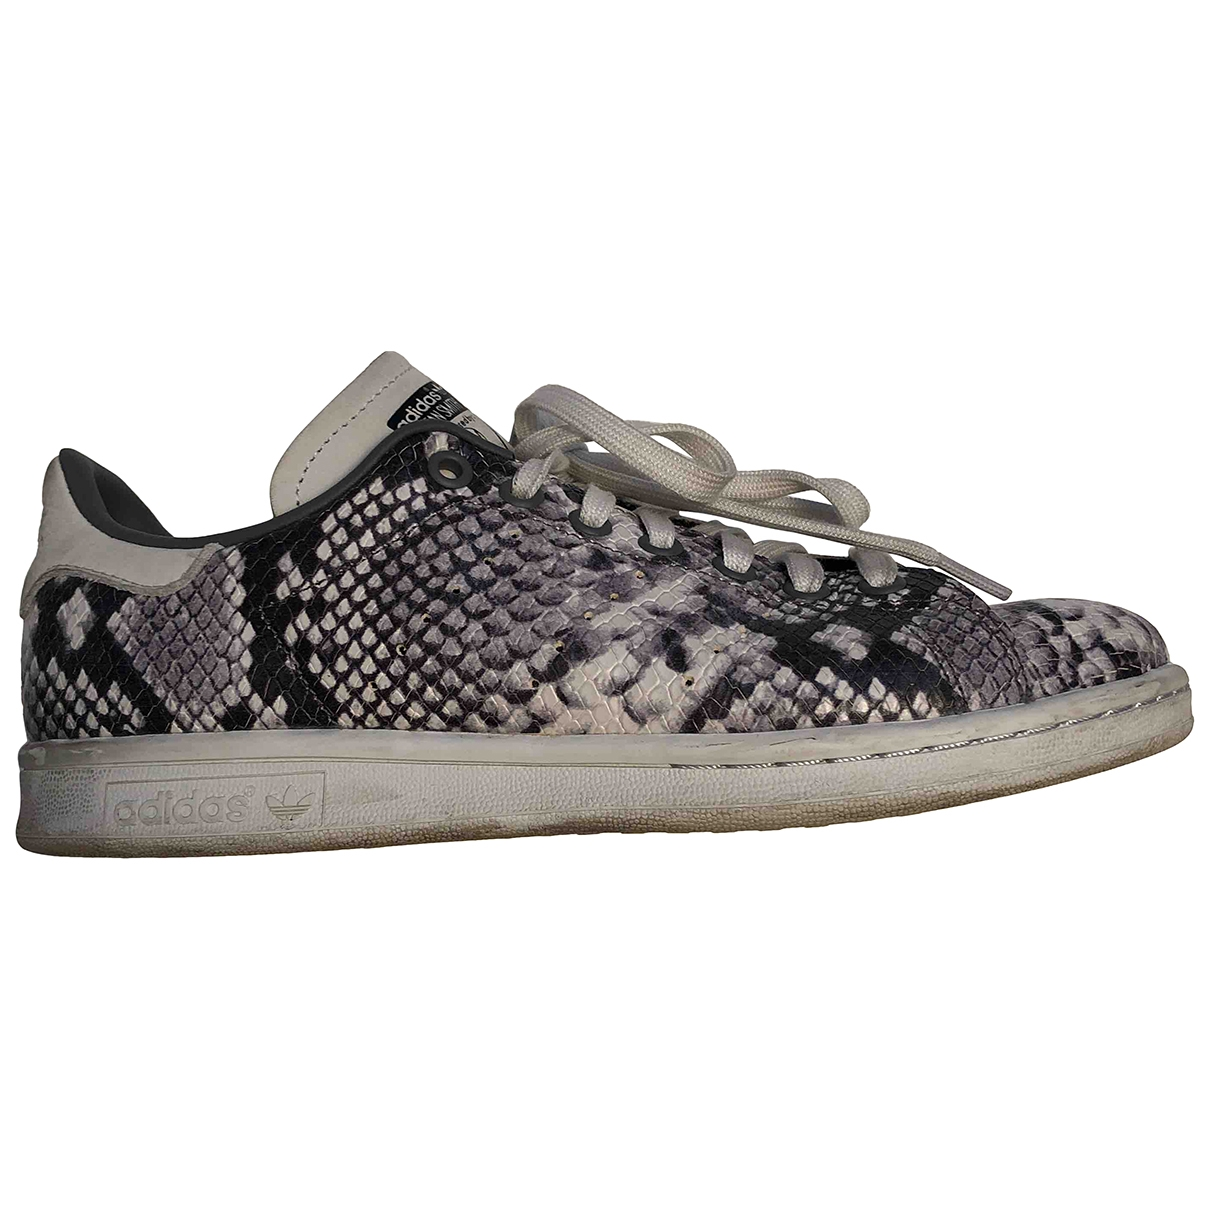 Adidas - Baskets Stan Smith pour femme en caoutchouc - anthracite